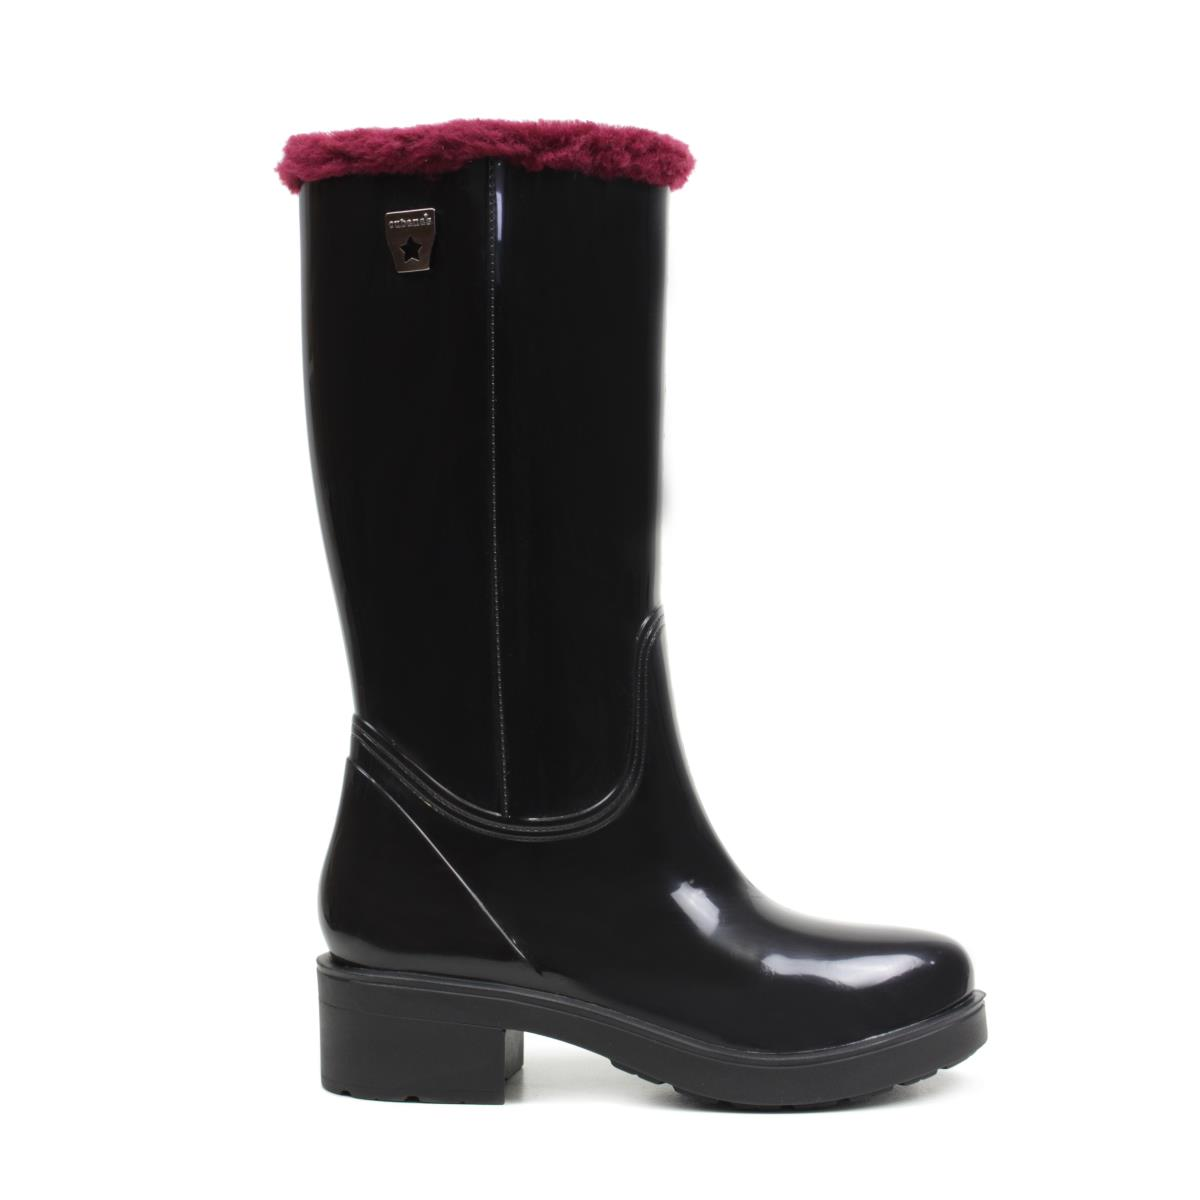 RAINYBOOT CUBANAS STORM430 BLACK+BORDEAUX